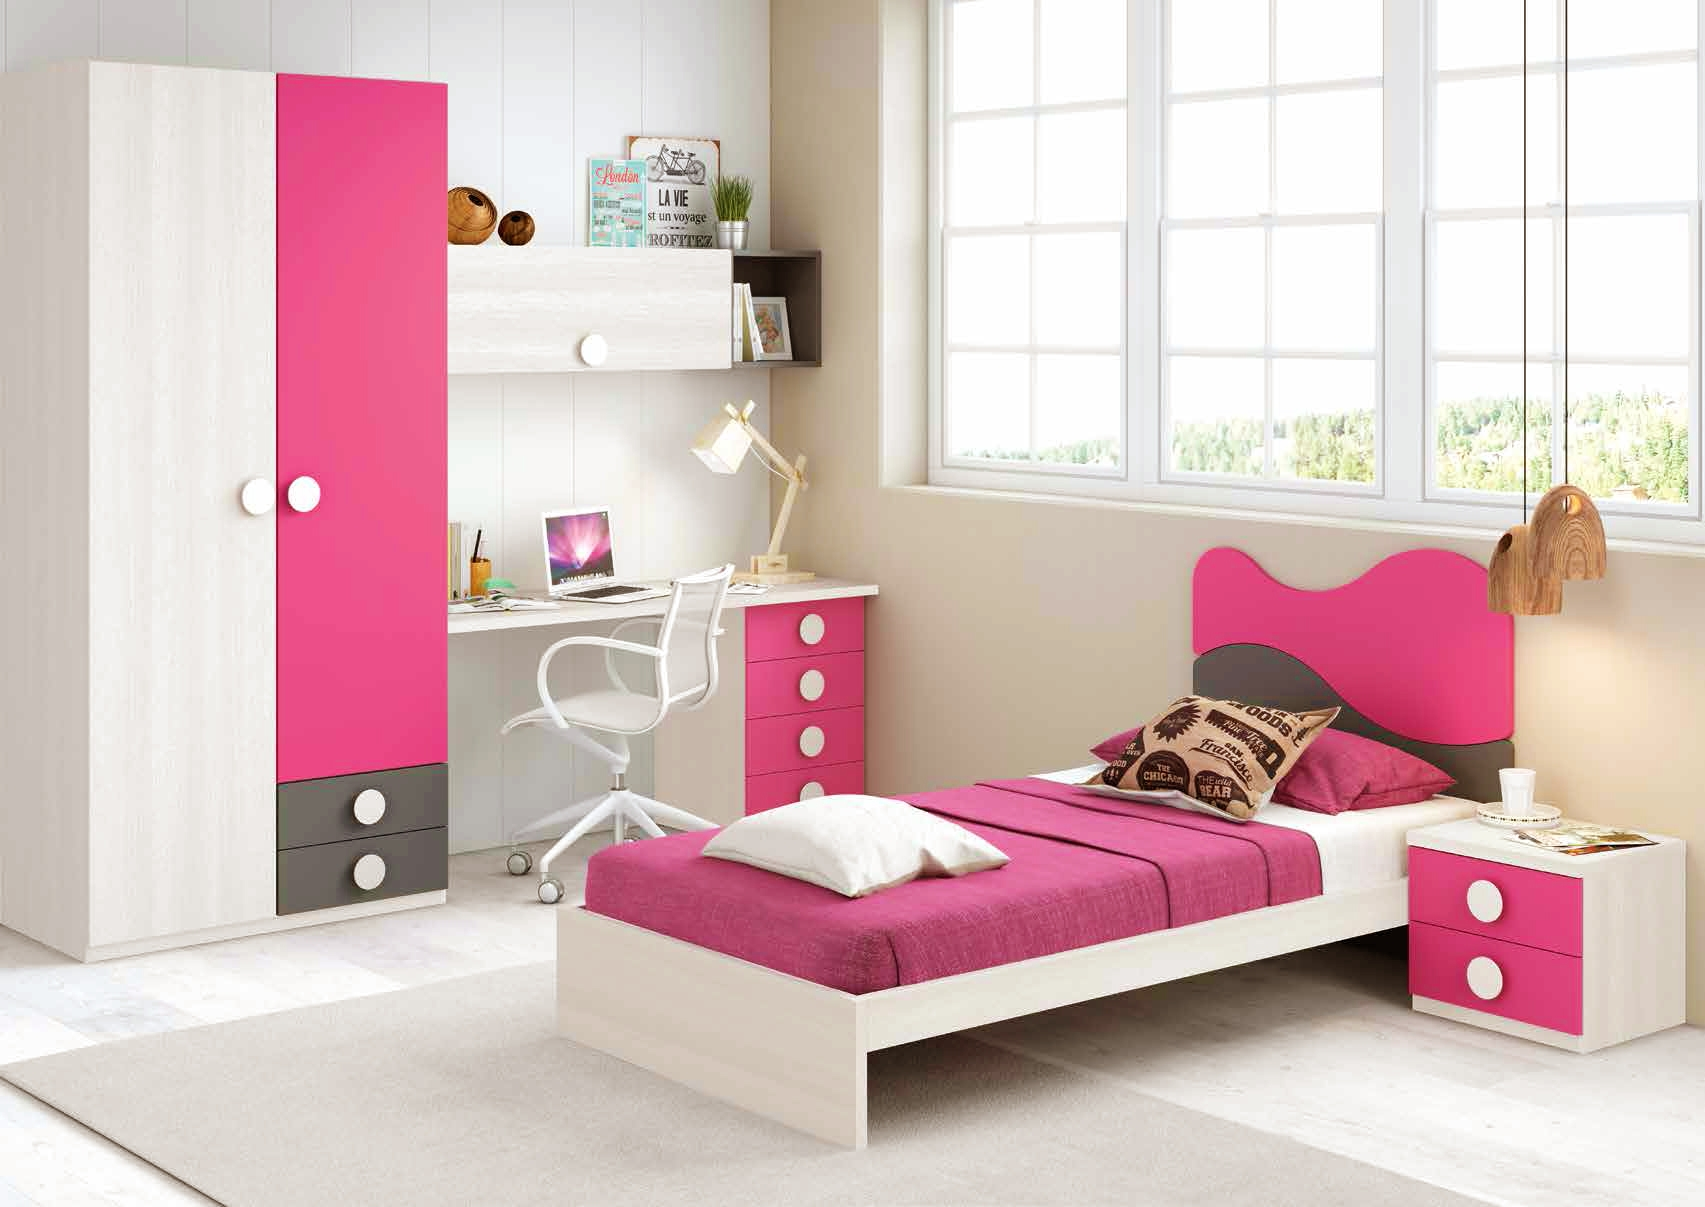 Couleur chambre fille rose et gris for Photo chambre ado fille